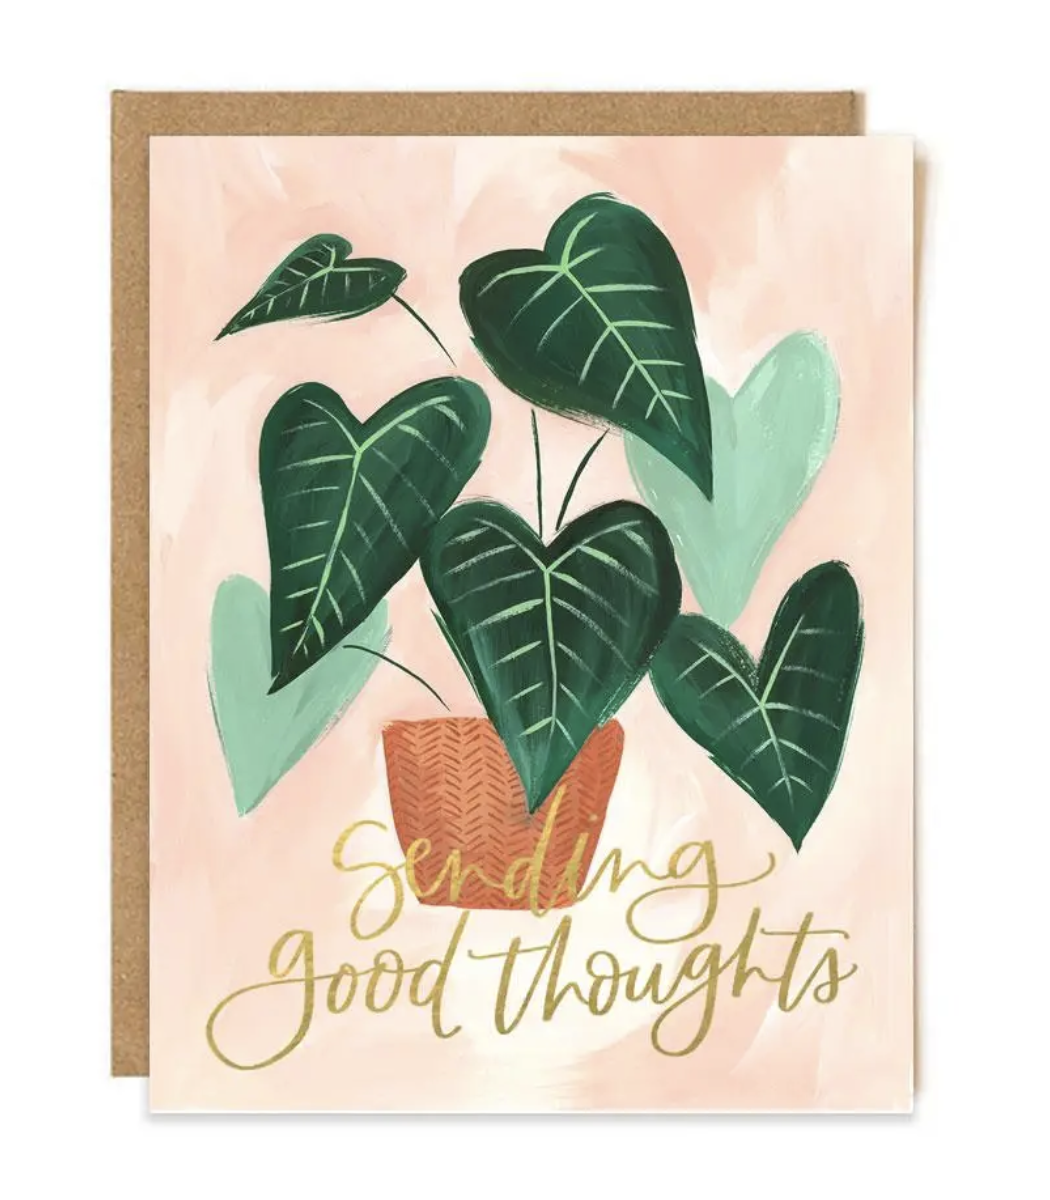 """""""Sending Good Thoughts"""" Plant Blank Greeting Card"""